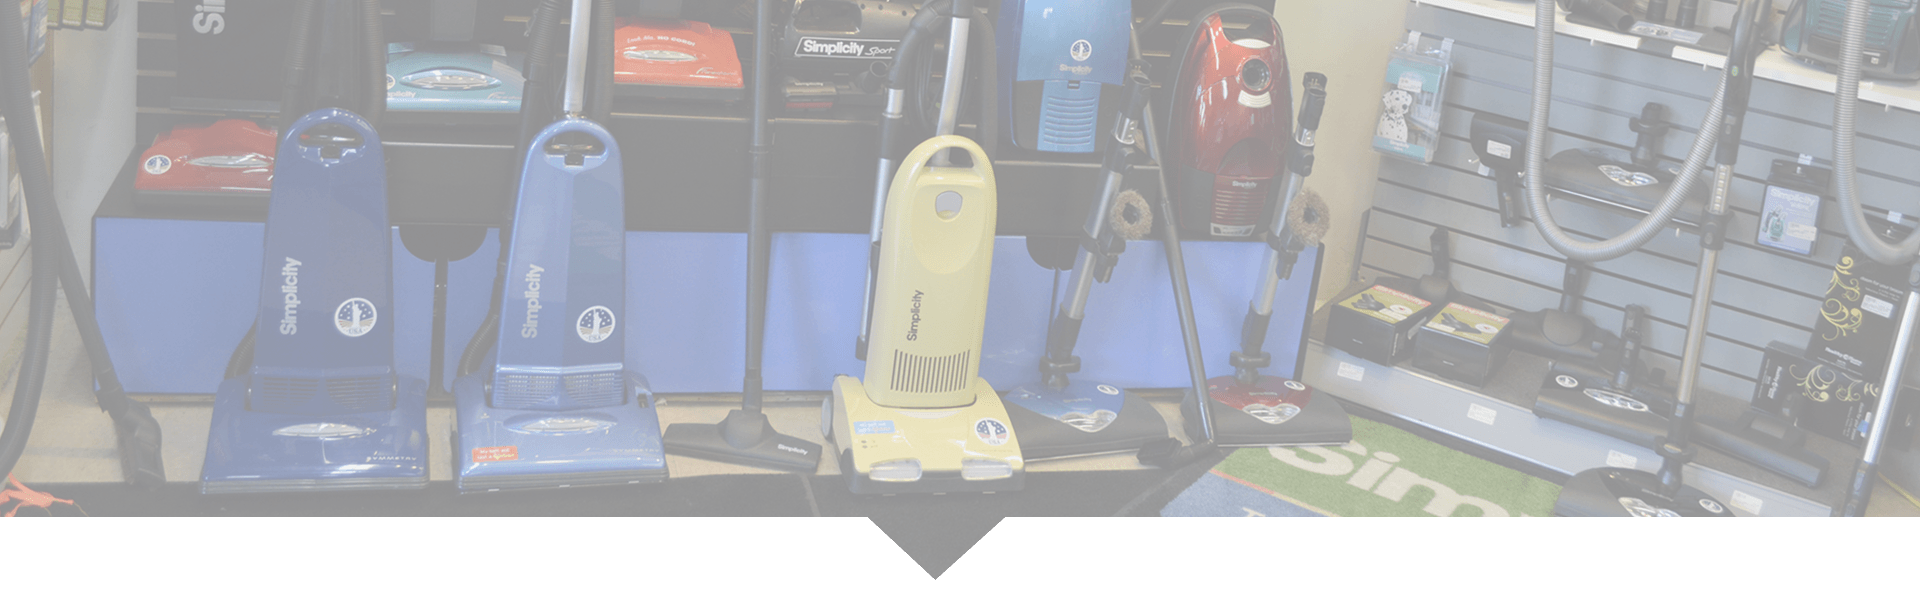 The Vacuum Center Triad Inc is your one-stop dealer and repair shop for vacuums, carpet cleaners and central vacuum systems!